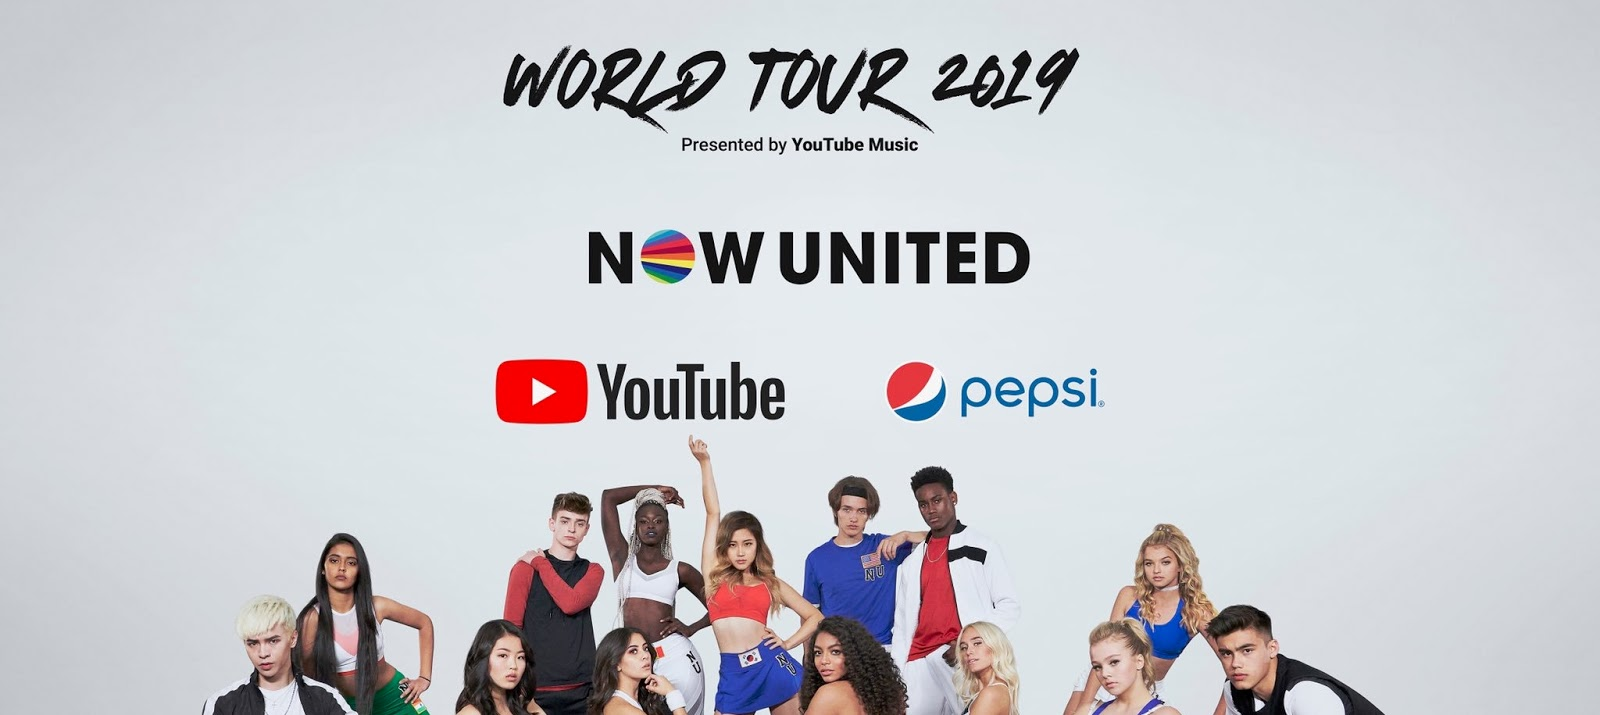 Now United anuncia nova turnê mundial!